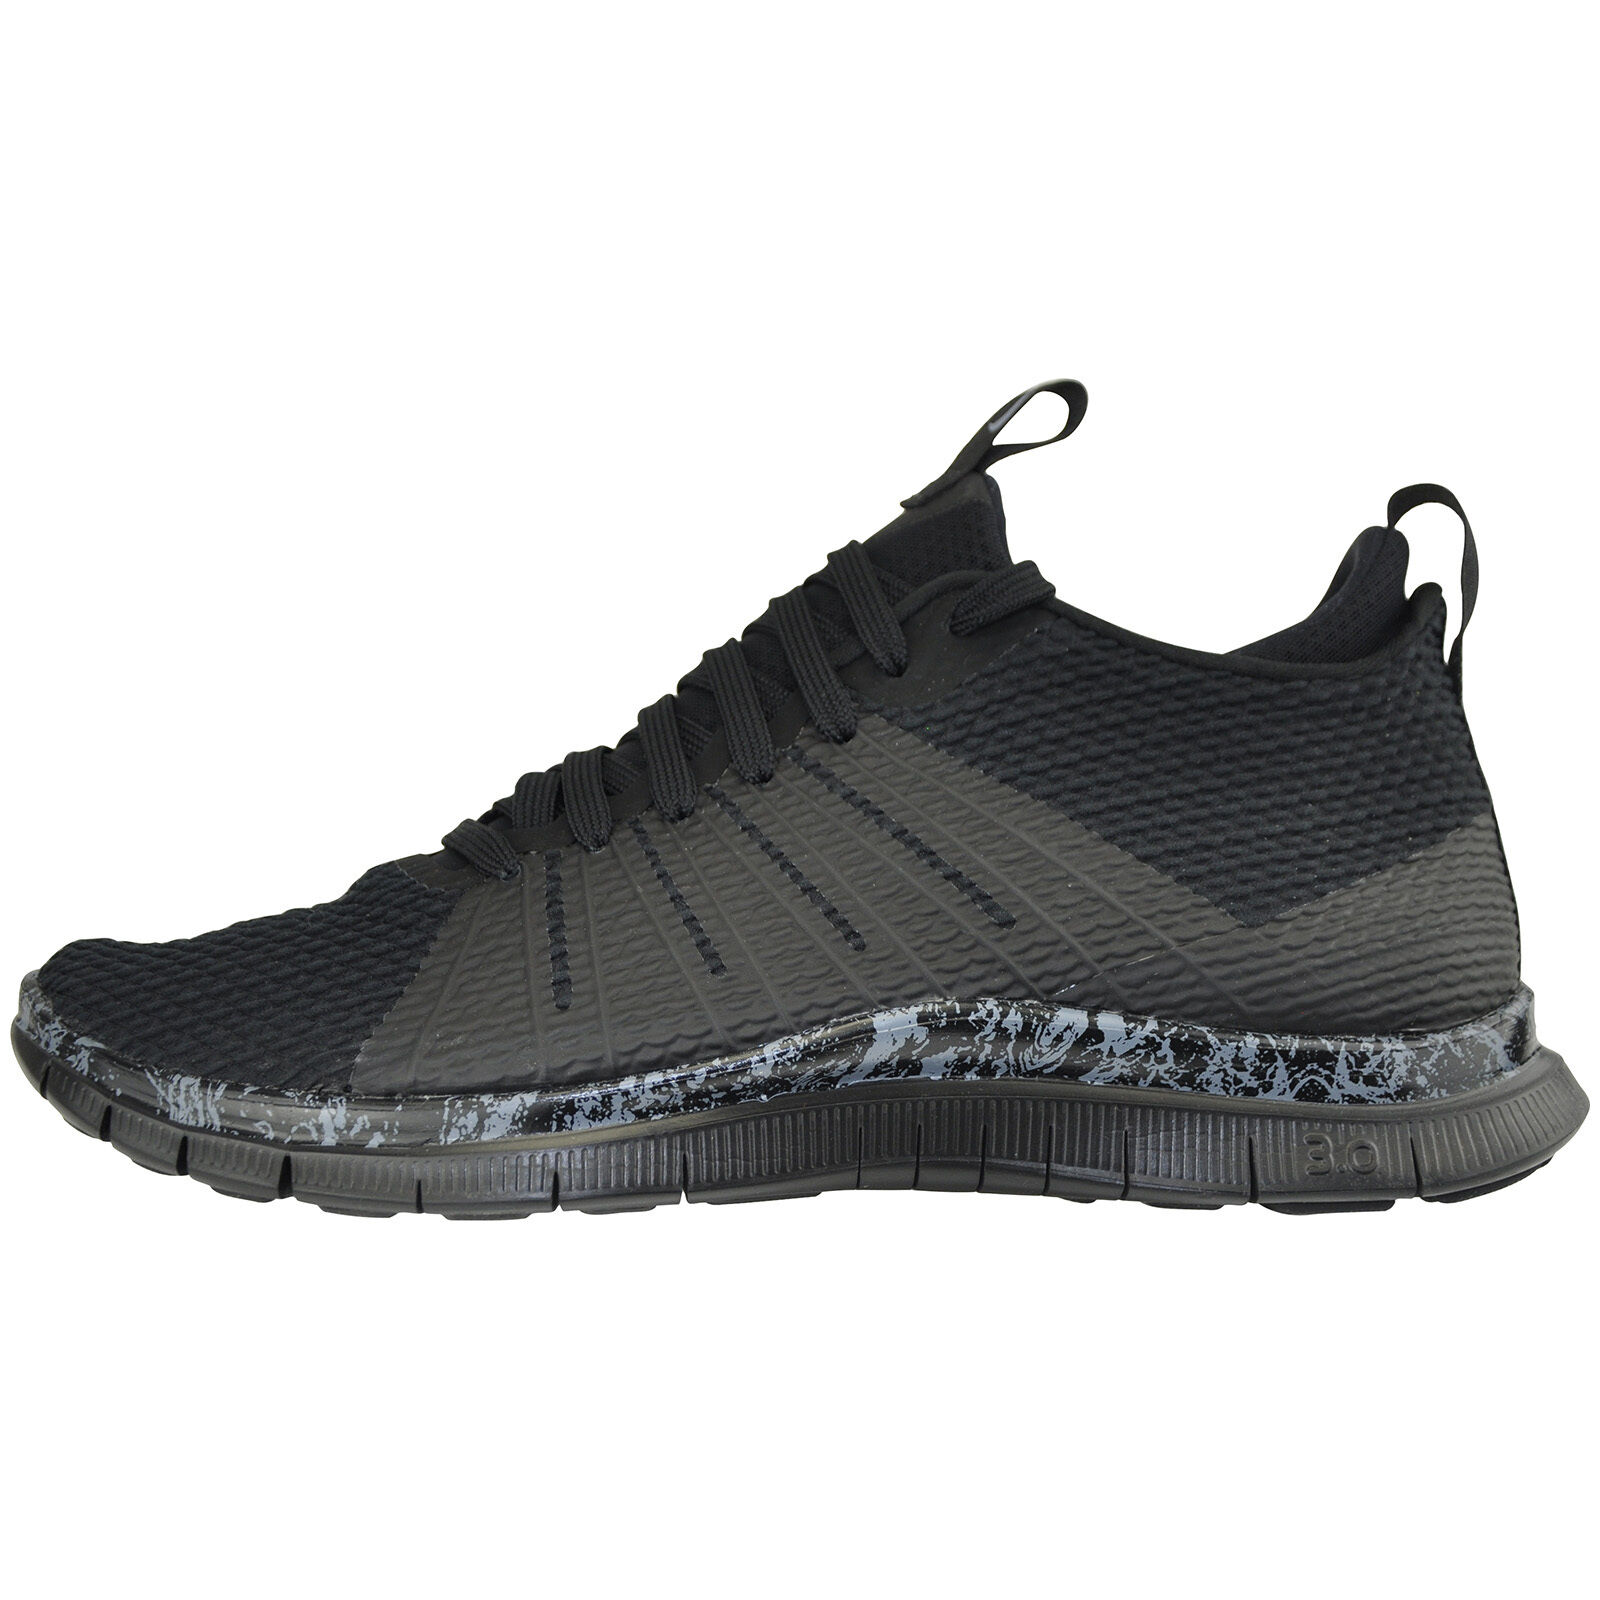 NIKE FREE HYPERVENOM 2 747139-010 Lifestyle Running Shoes Casual Trainers Brand discount